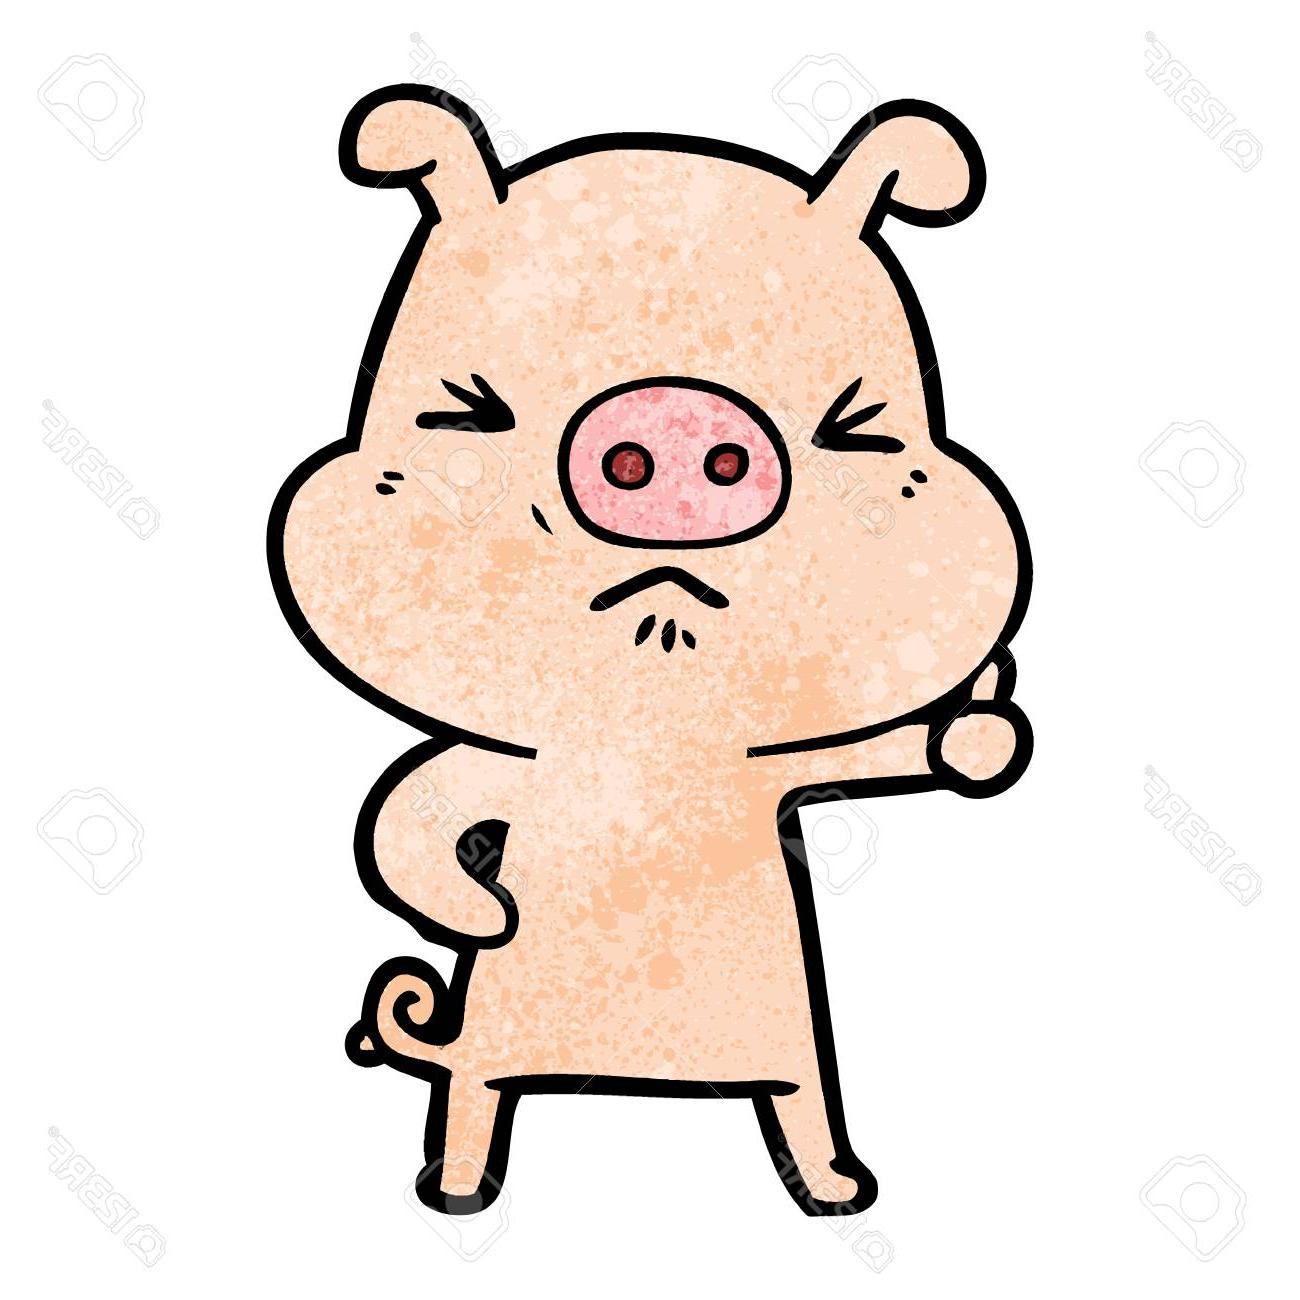 Artist clipart vector drawing clipart royalty free stock HD Angry Pig Vector Drawing » Free Vector Art, Images, Graphics ... clipart royalty free stock